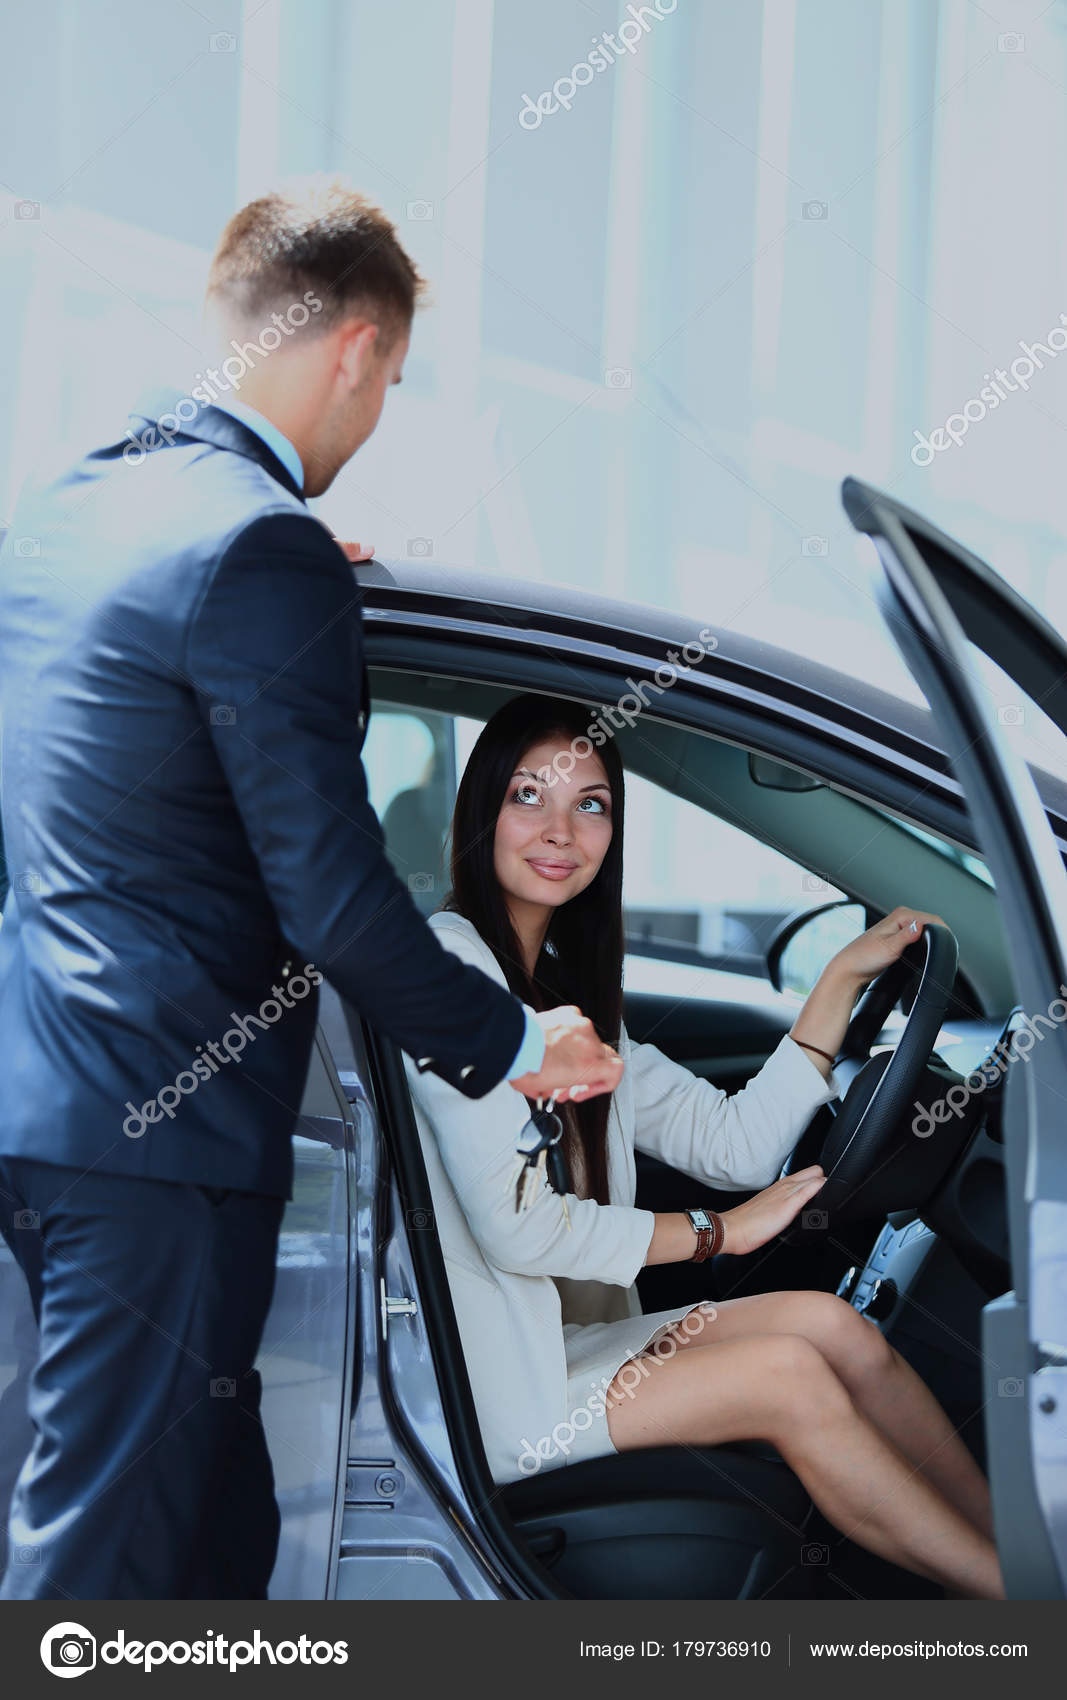 Buying A New Car Woman Buying A New Car Stock Photo Depositedhar 179736910